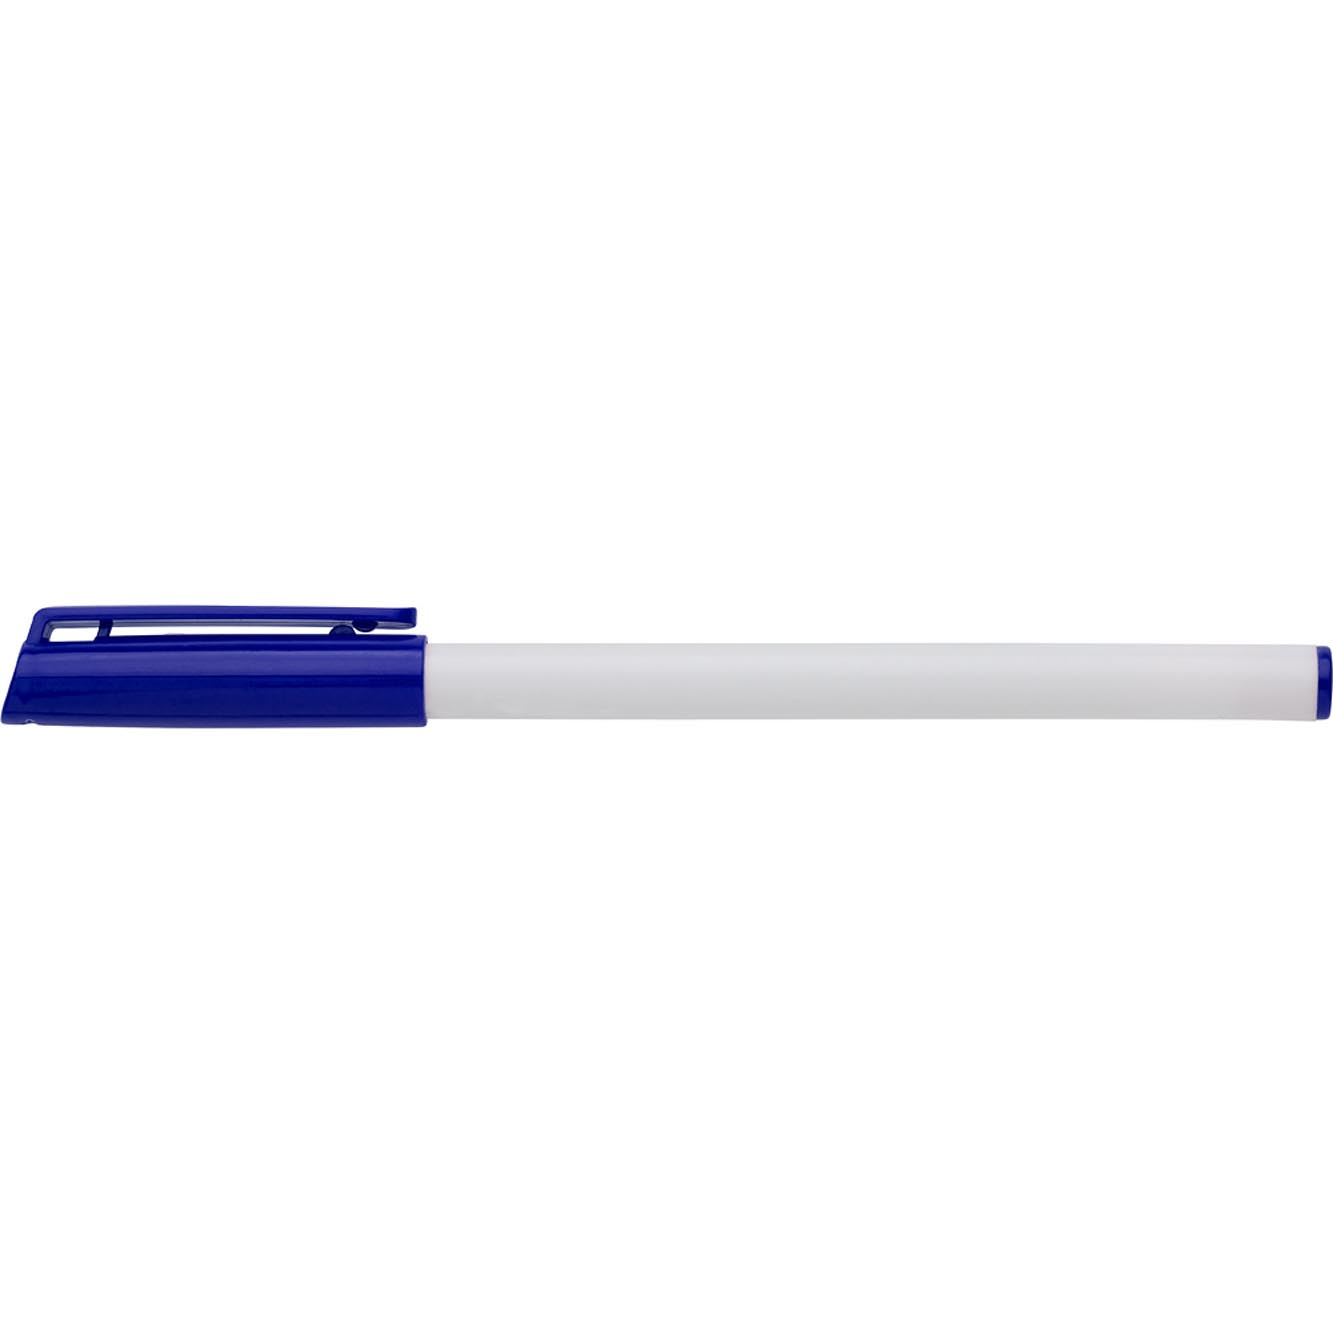 Ballpen with coloured top, cap and ink - Blue giv-729905